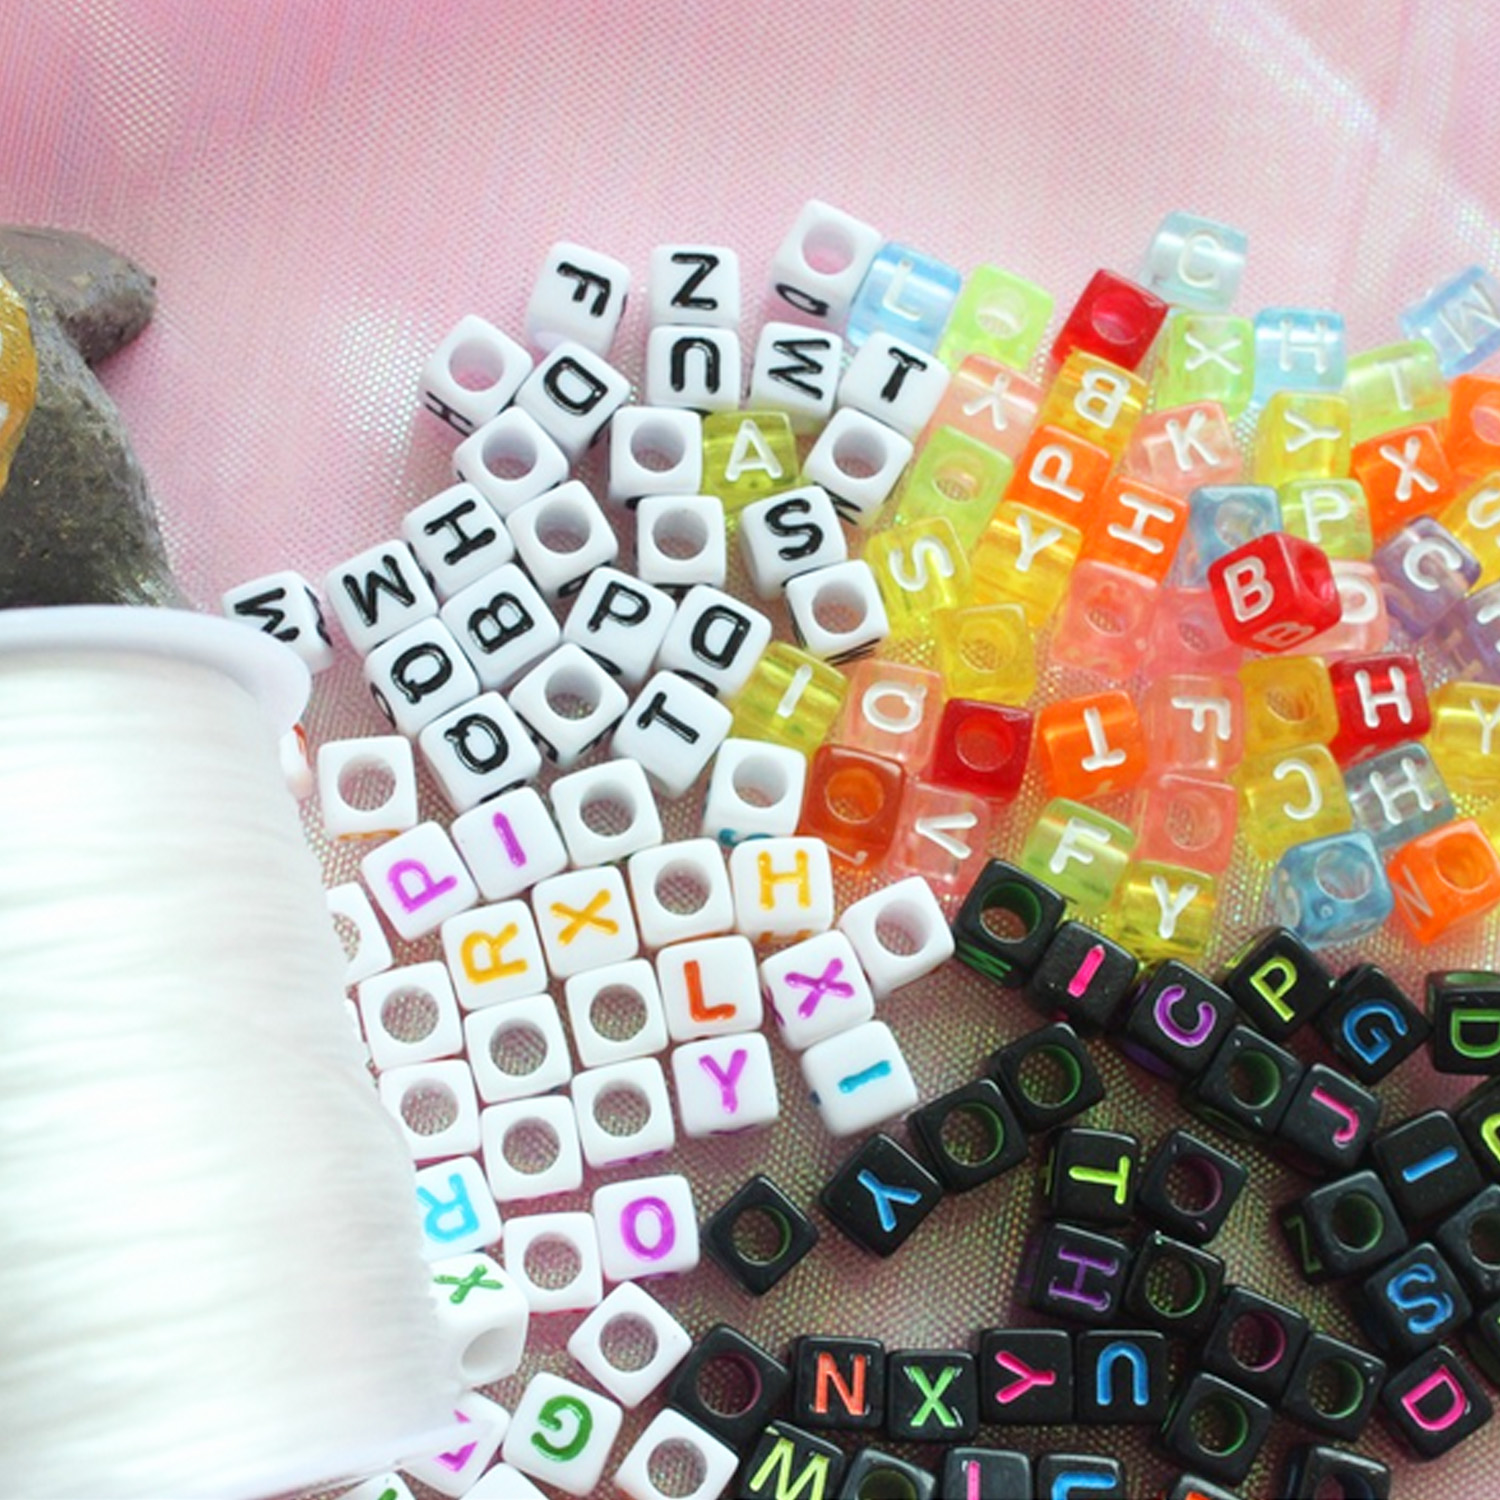 800PCS 6mm 4Colors Square Cube Alphabet/ Letter Acrylic Loose Beads Toy For Kid Girls DIY Craft Make Bracelets Necklaces Jewelry